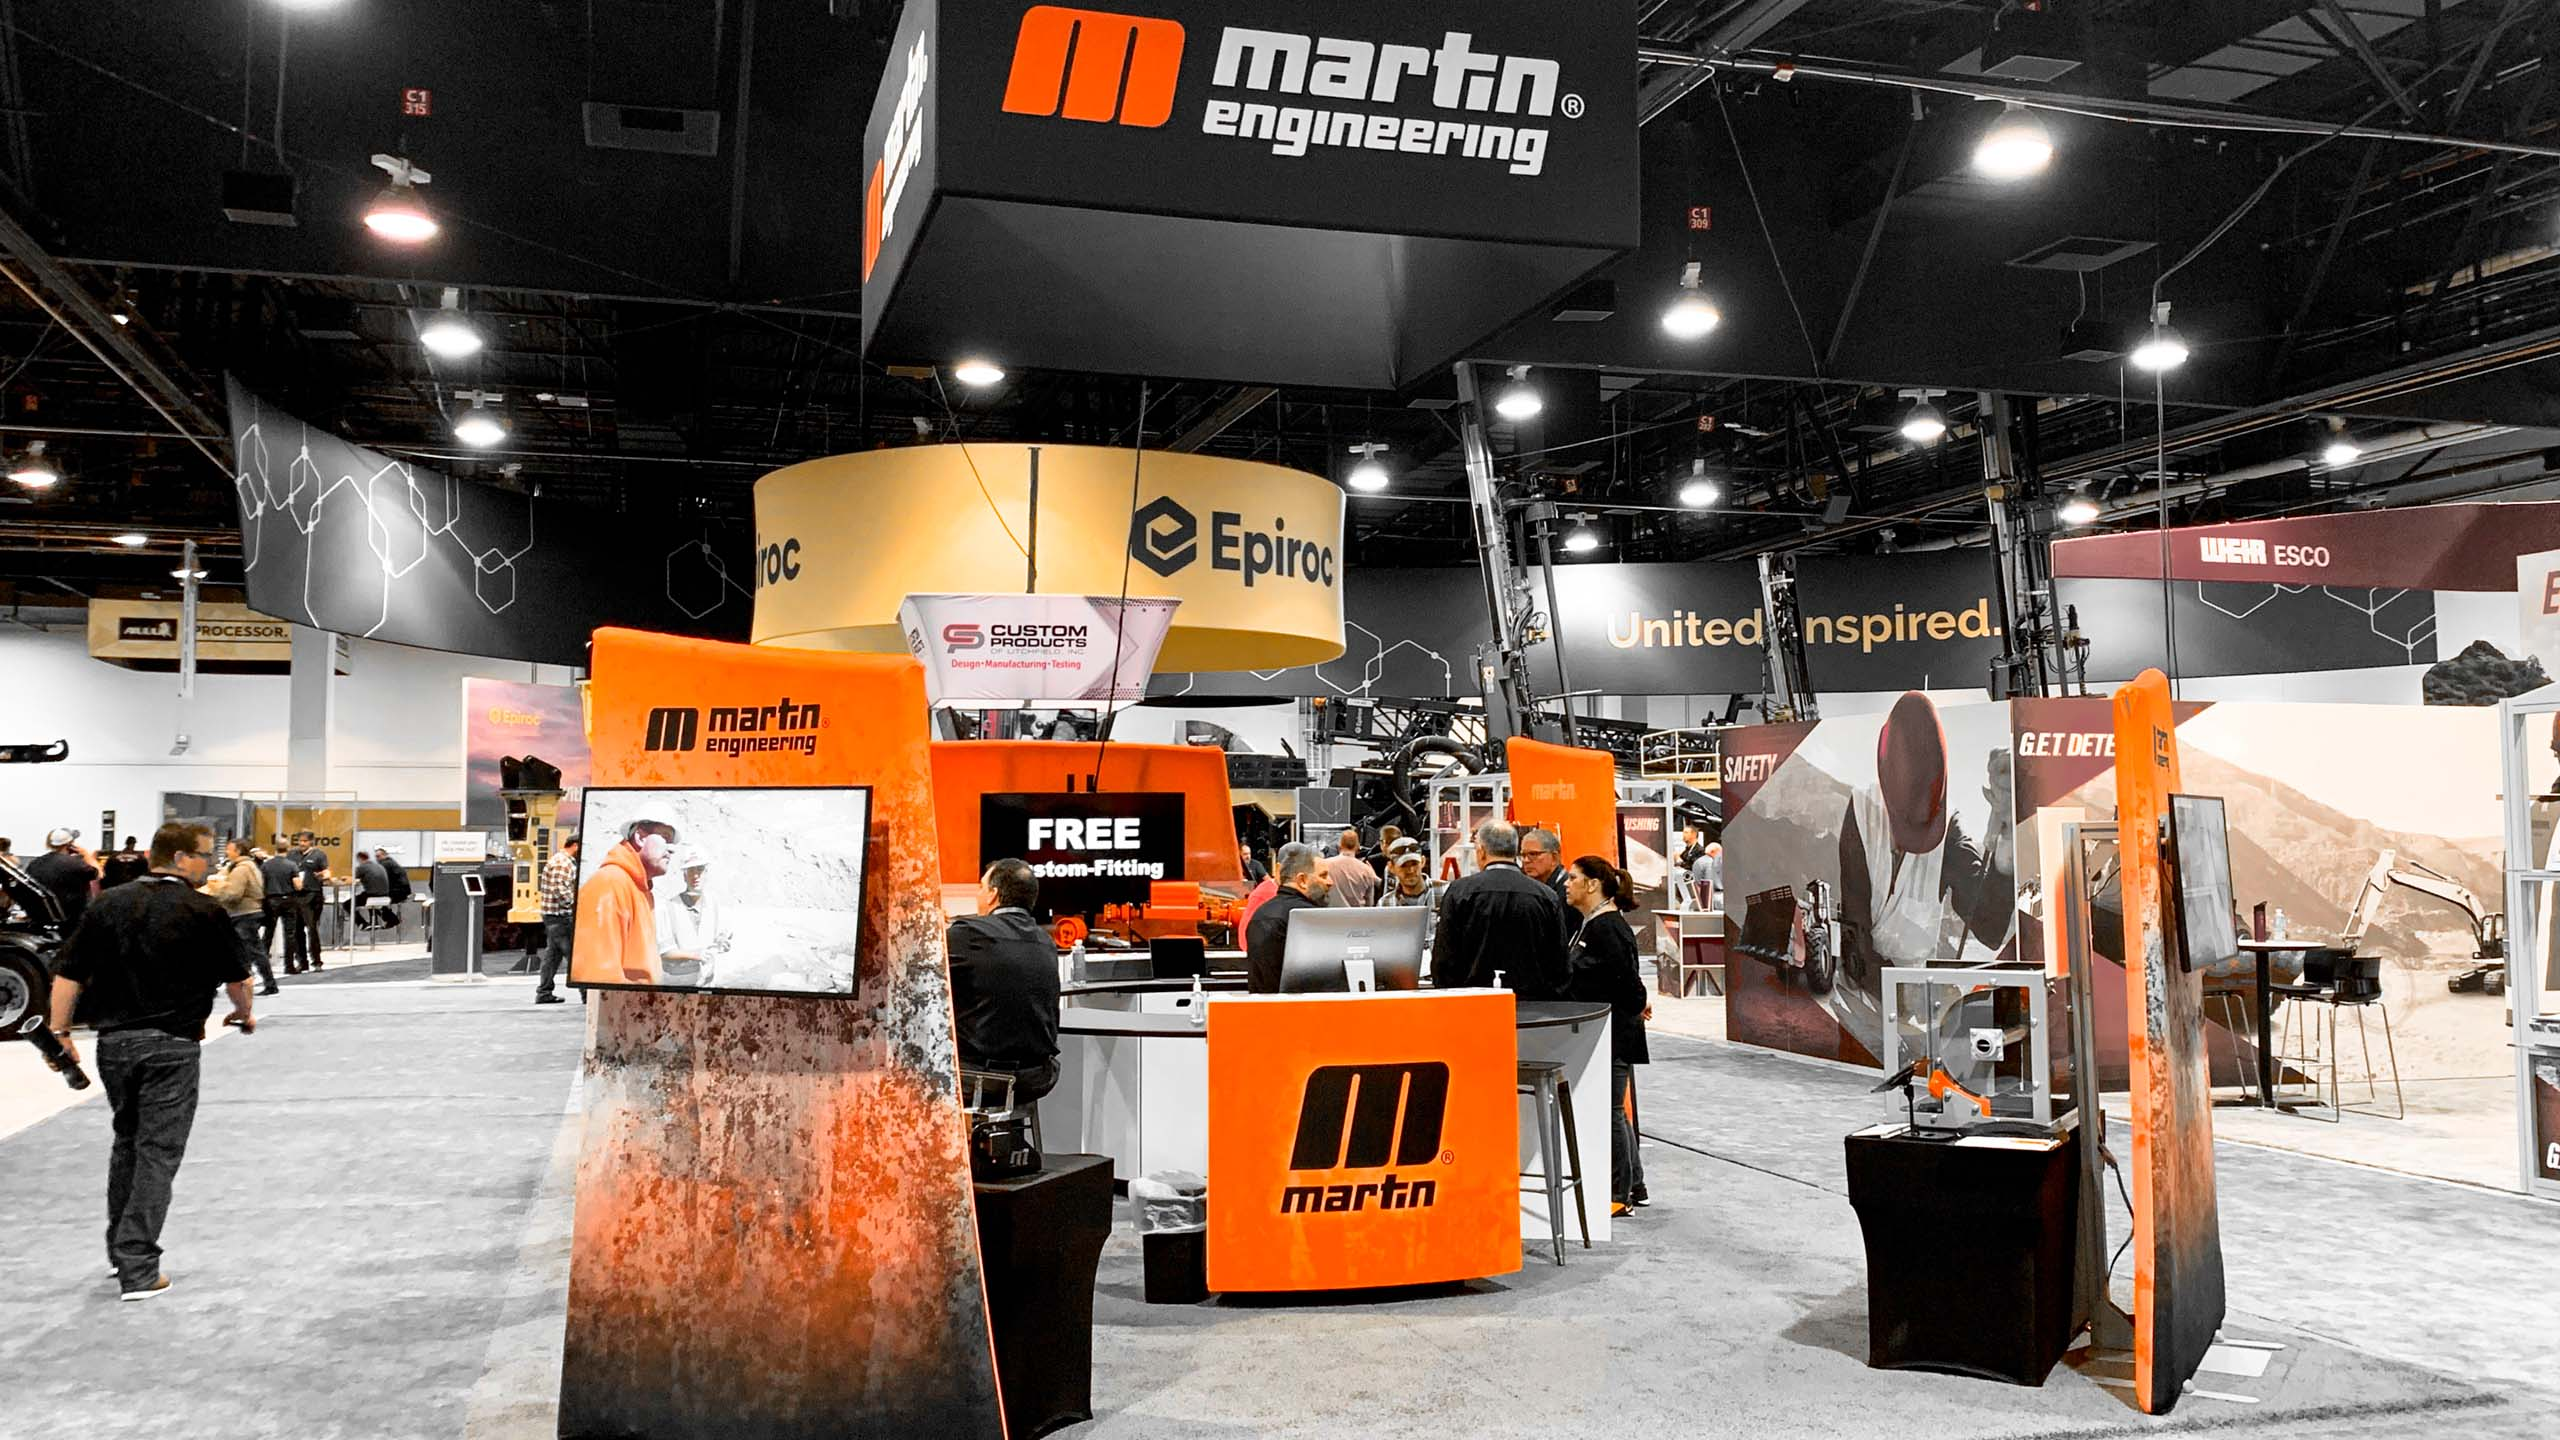 Martin Engineerng will be displaying new technology at the Minexpo show in Las Vegas